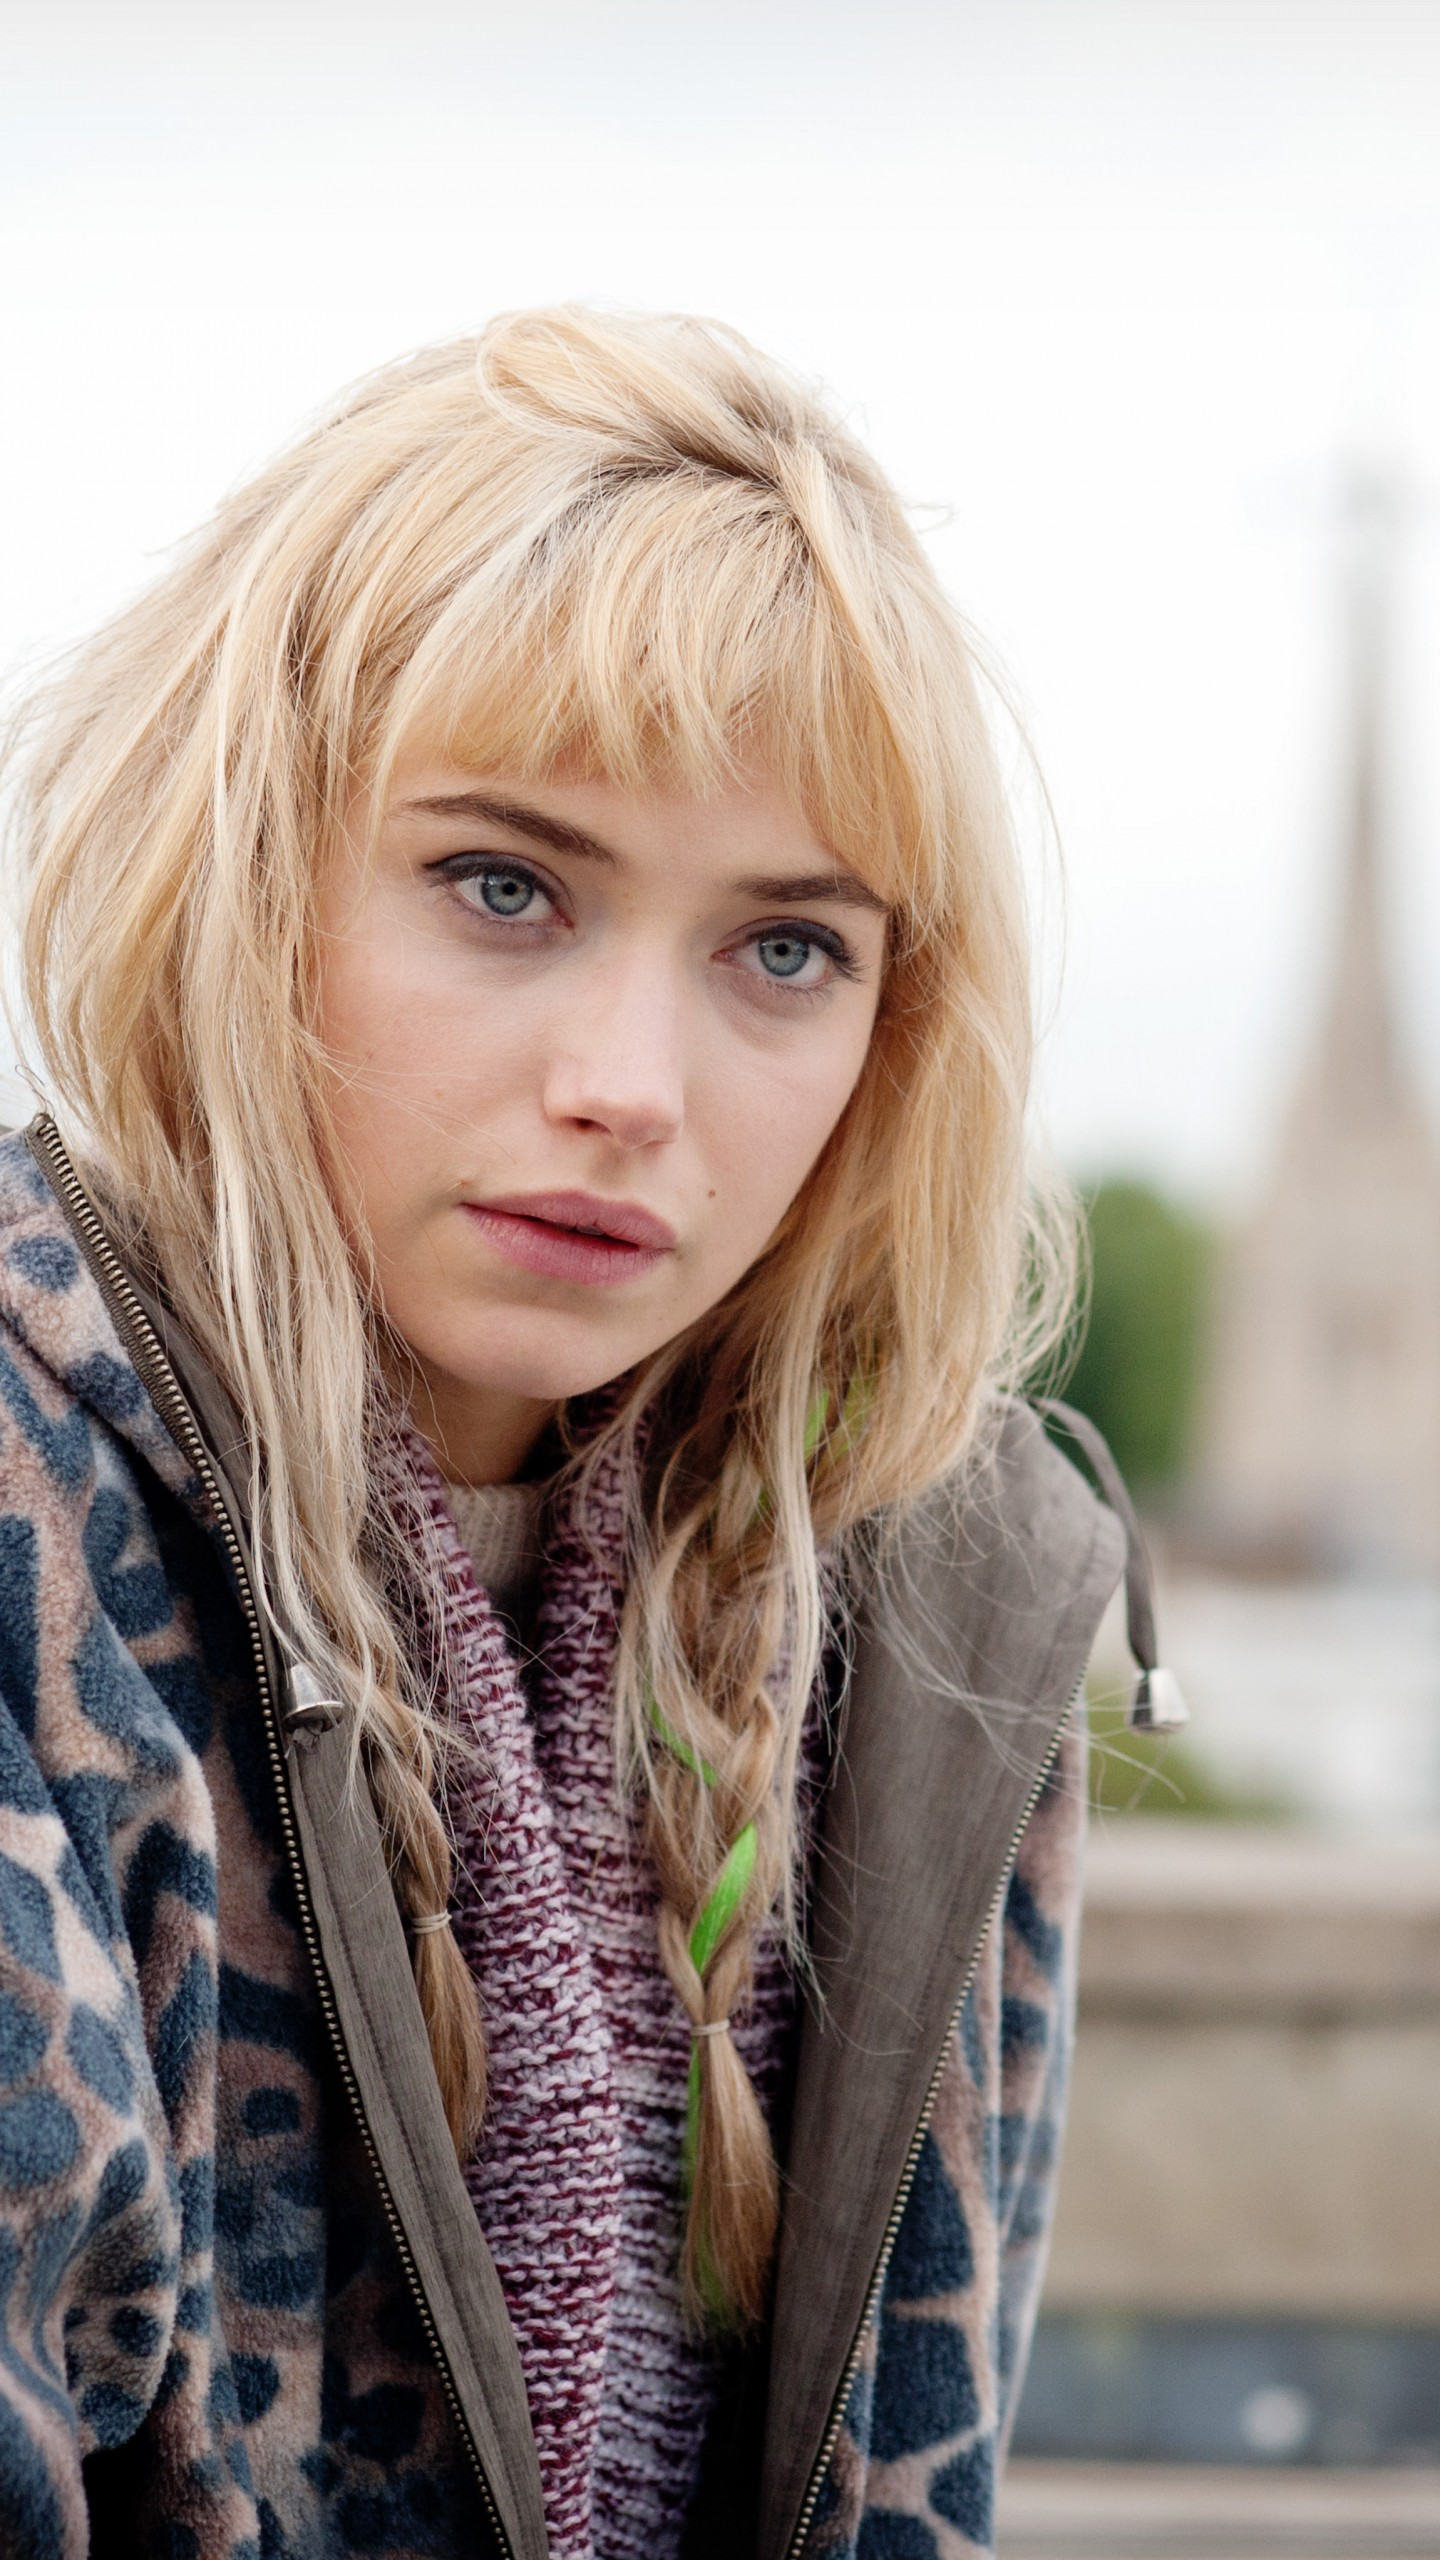 Wallpaper Imogen Poots Most Popular Celebs In 2015